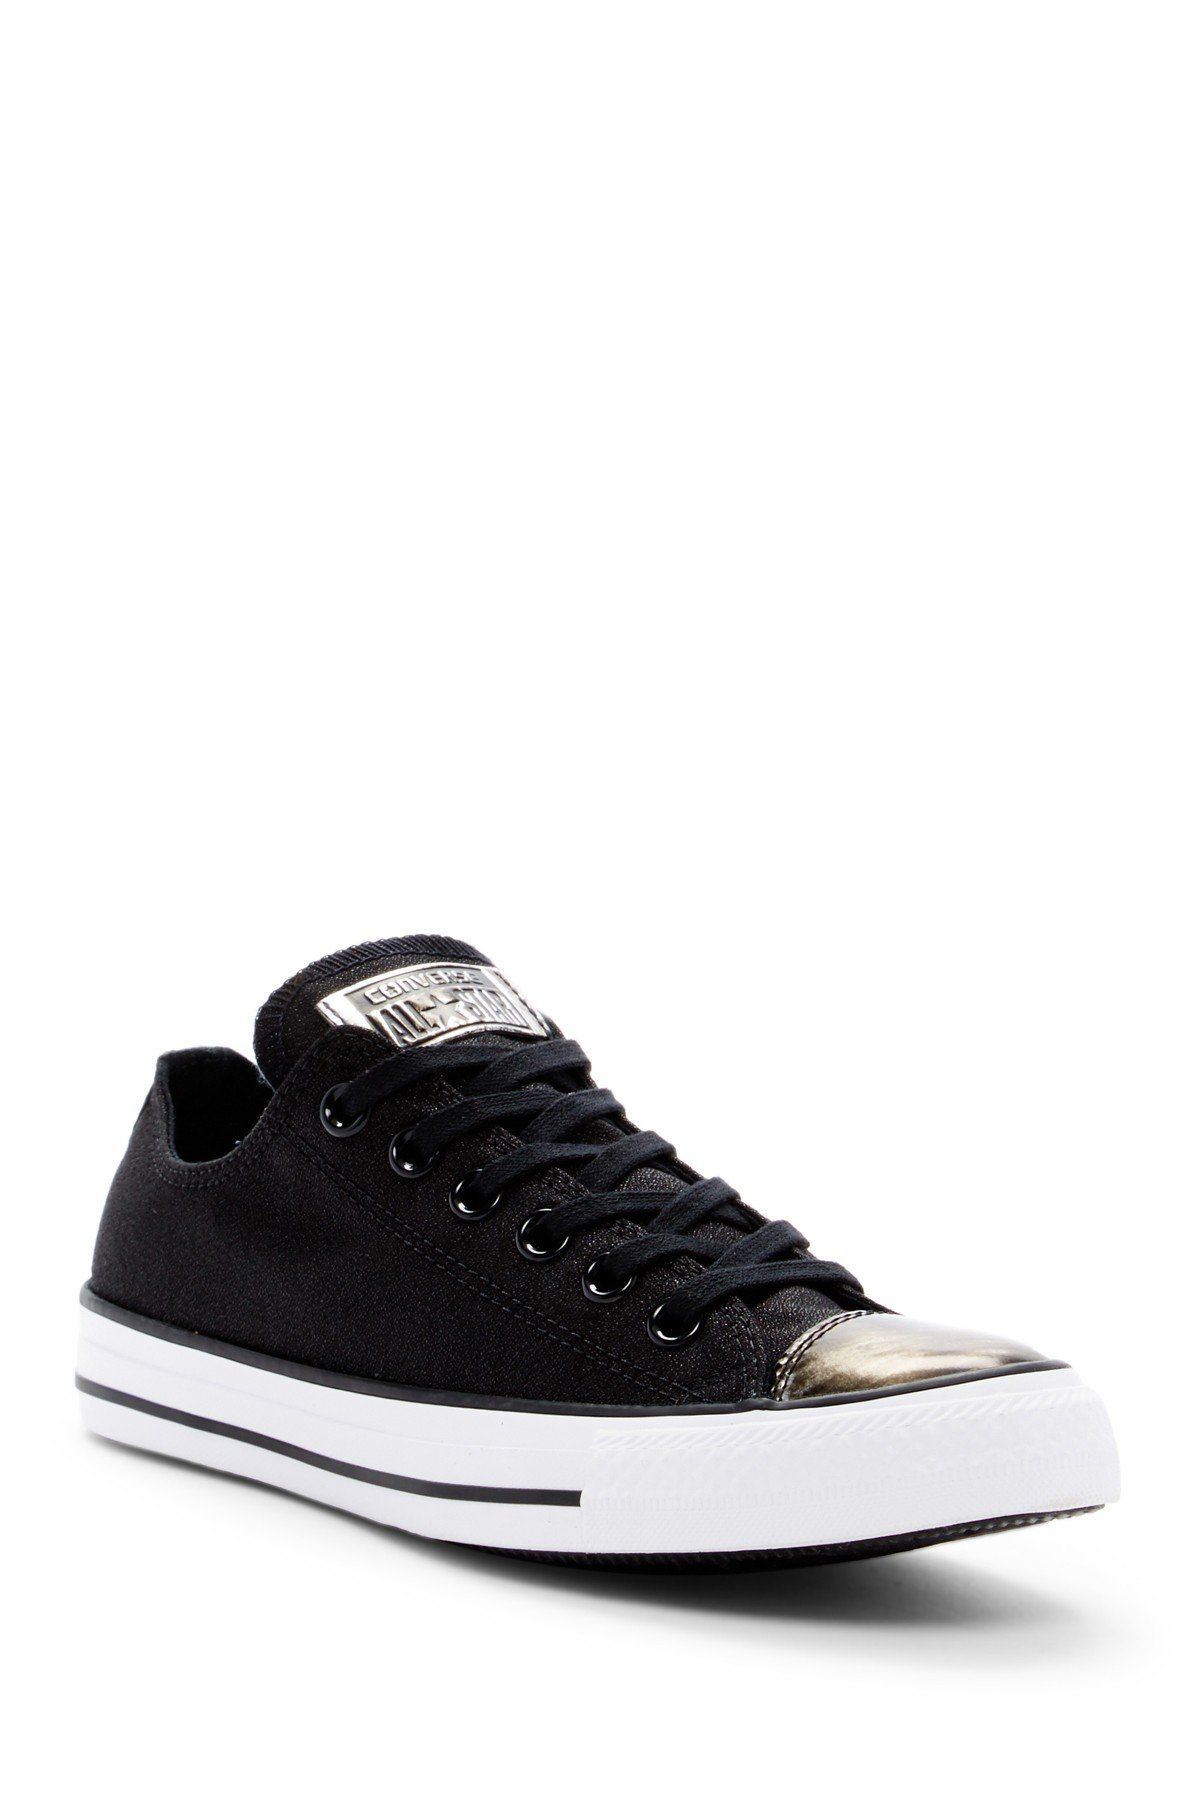 Converse Chuck Taylor All Star Brush Off Metallic Cap Toe Sneaker (Women) kuNtK7i3HW